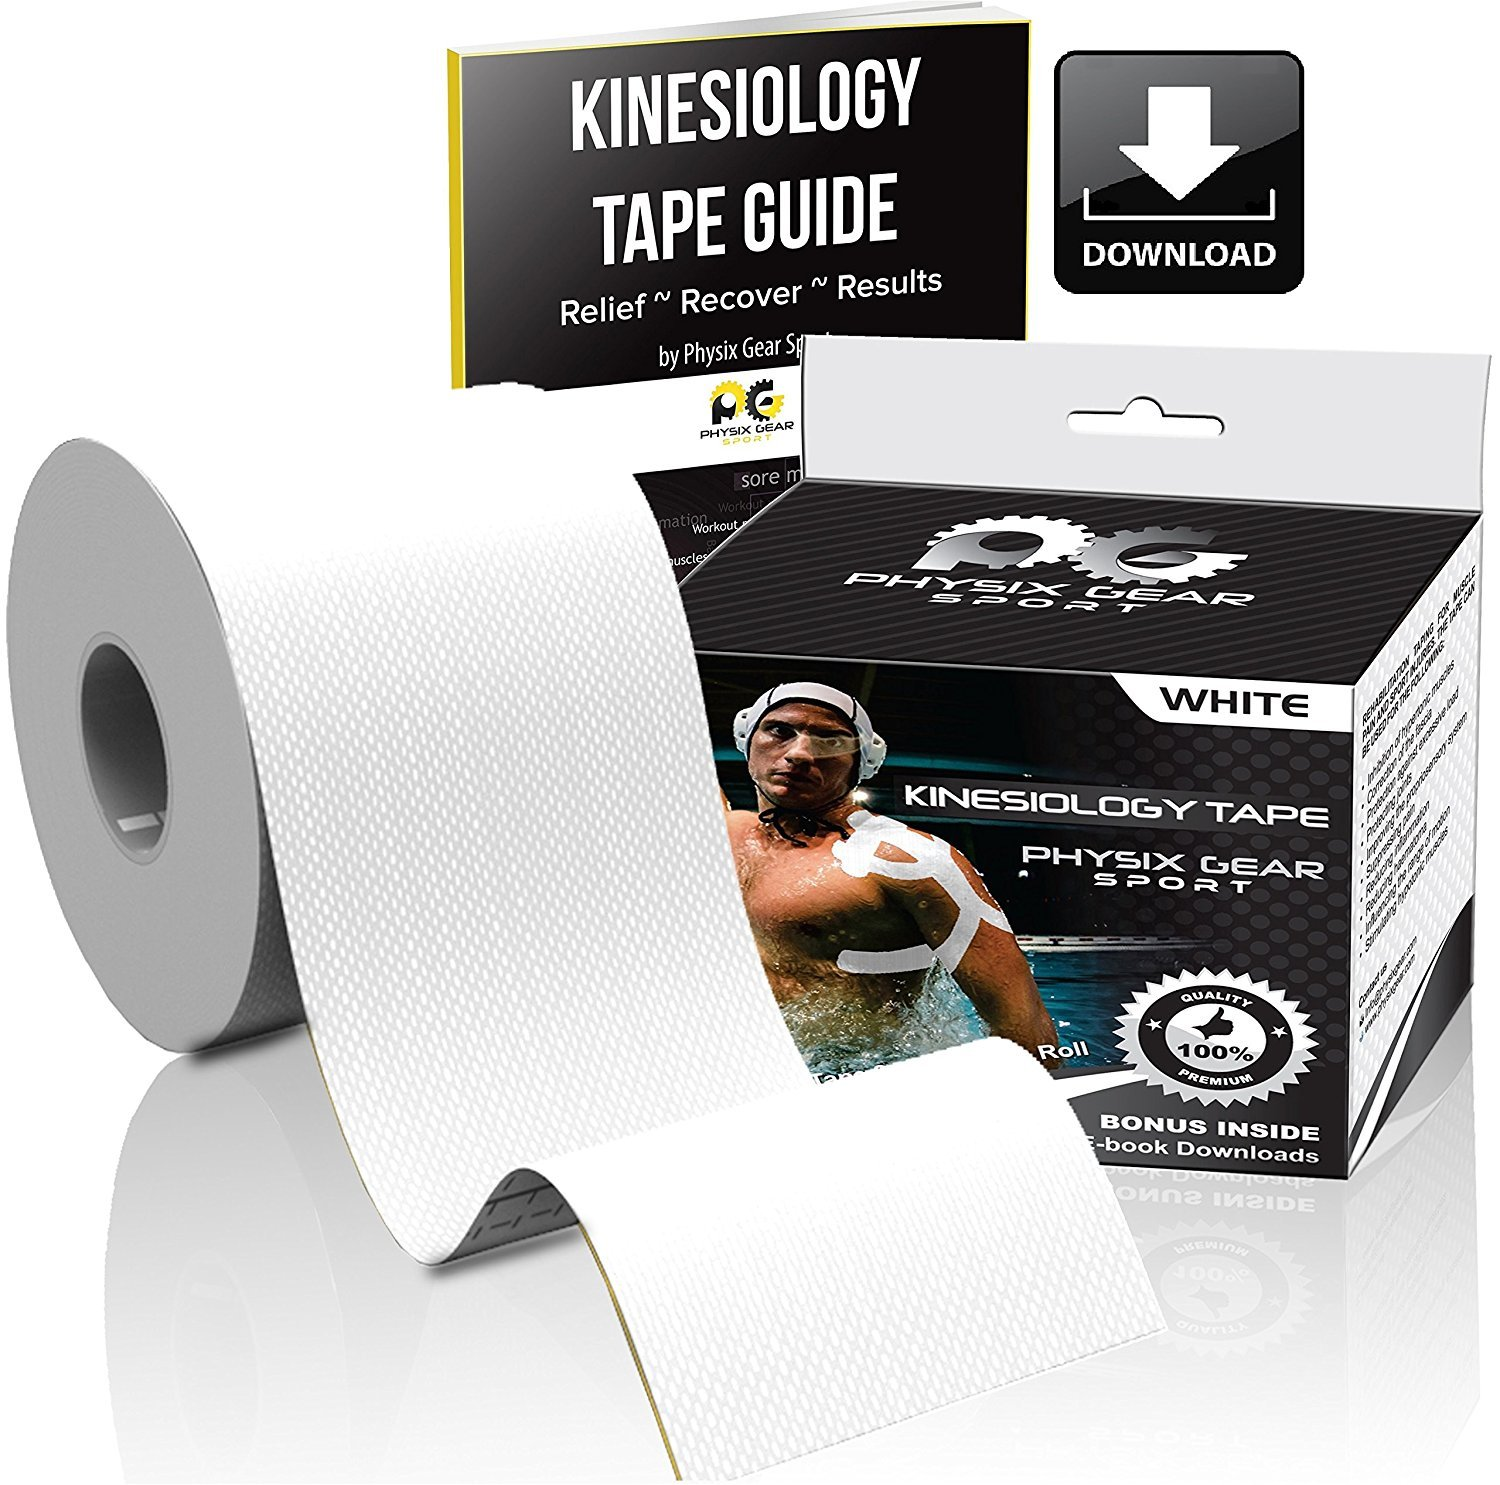 Physix Gear Sport Kinesiology Tape - Free Illustrated E-Guide - 16ft Uncut Roll - Best Pain Relief Adhesive for Muscles, Shin Splints Knee & Shoulder - 24/7 Waterproof Therapeutic Aid (1PK WHT) by Physix Gear Sport (Image #2)